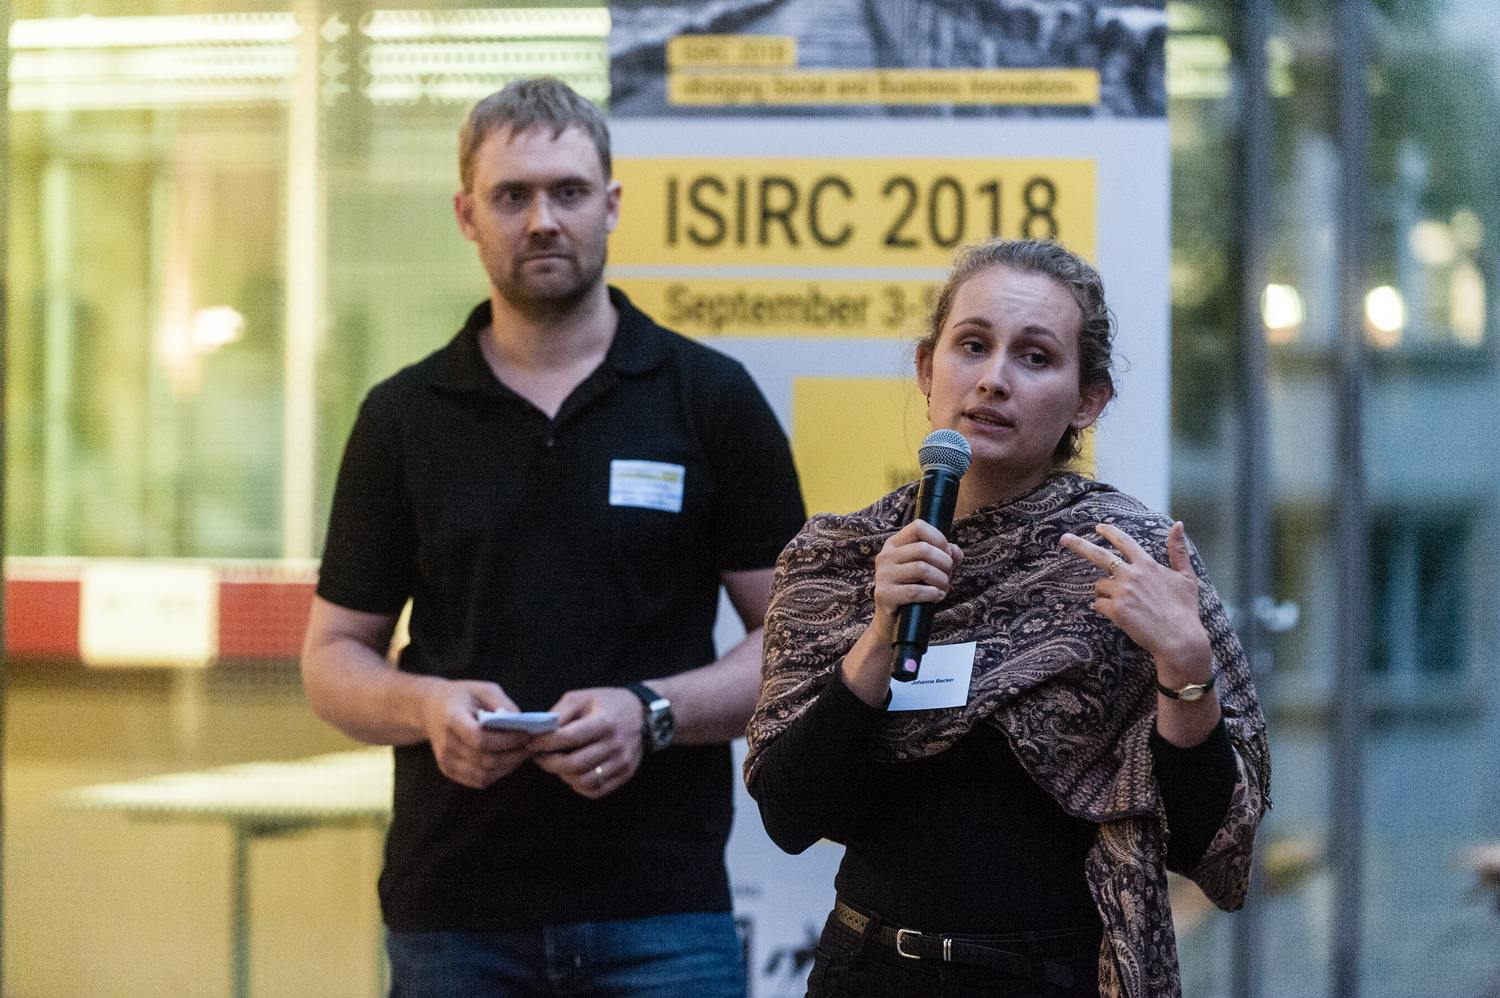 ISIRC 2018 Photo